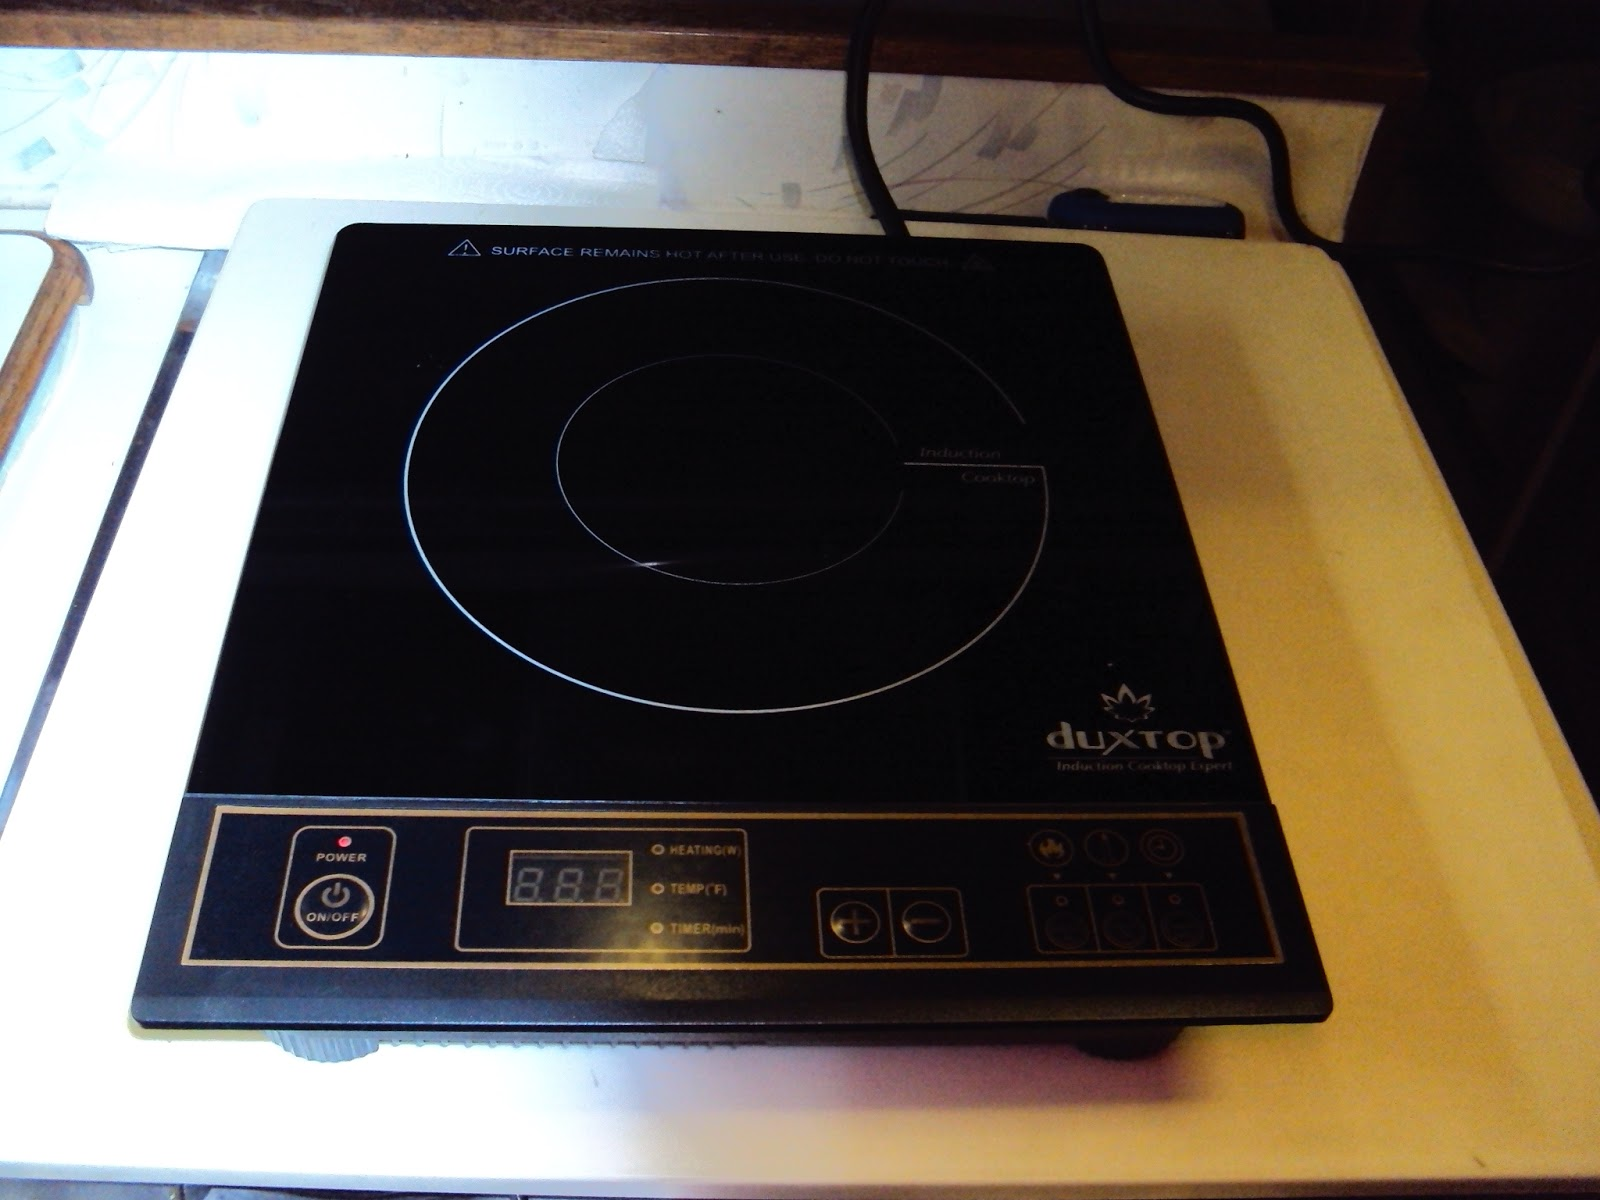 Wanderman Induction Cooking Does This Really Work